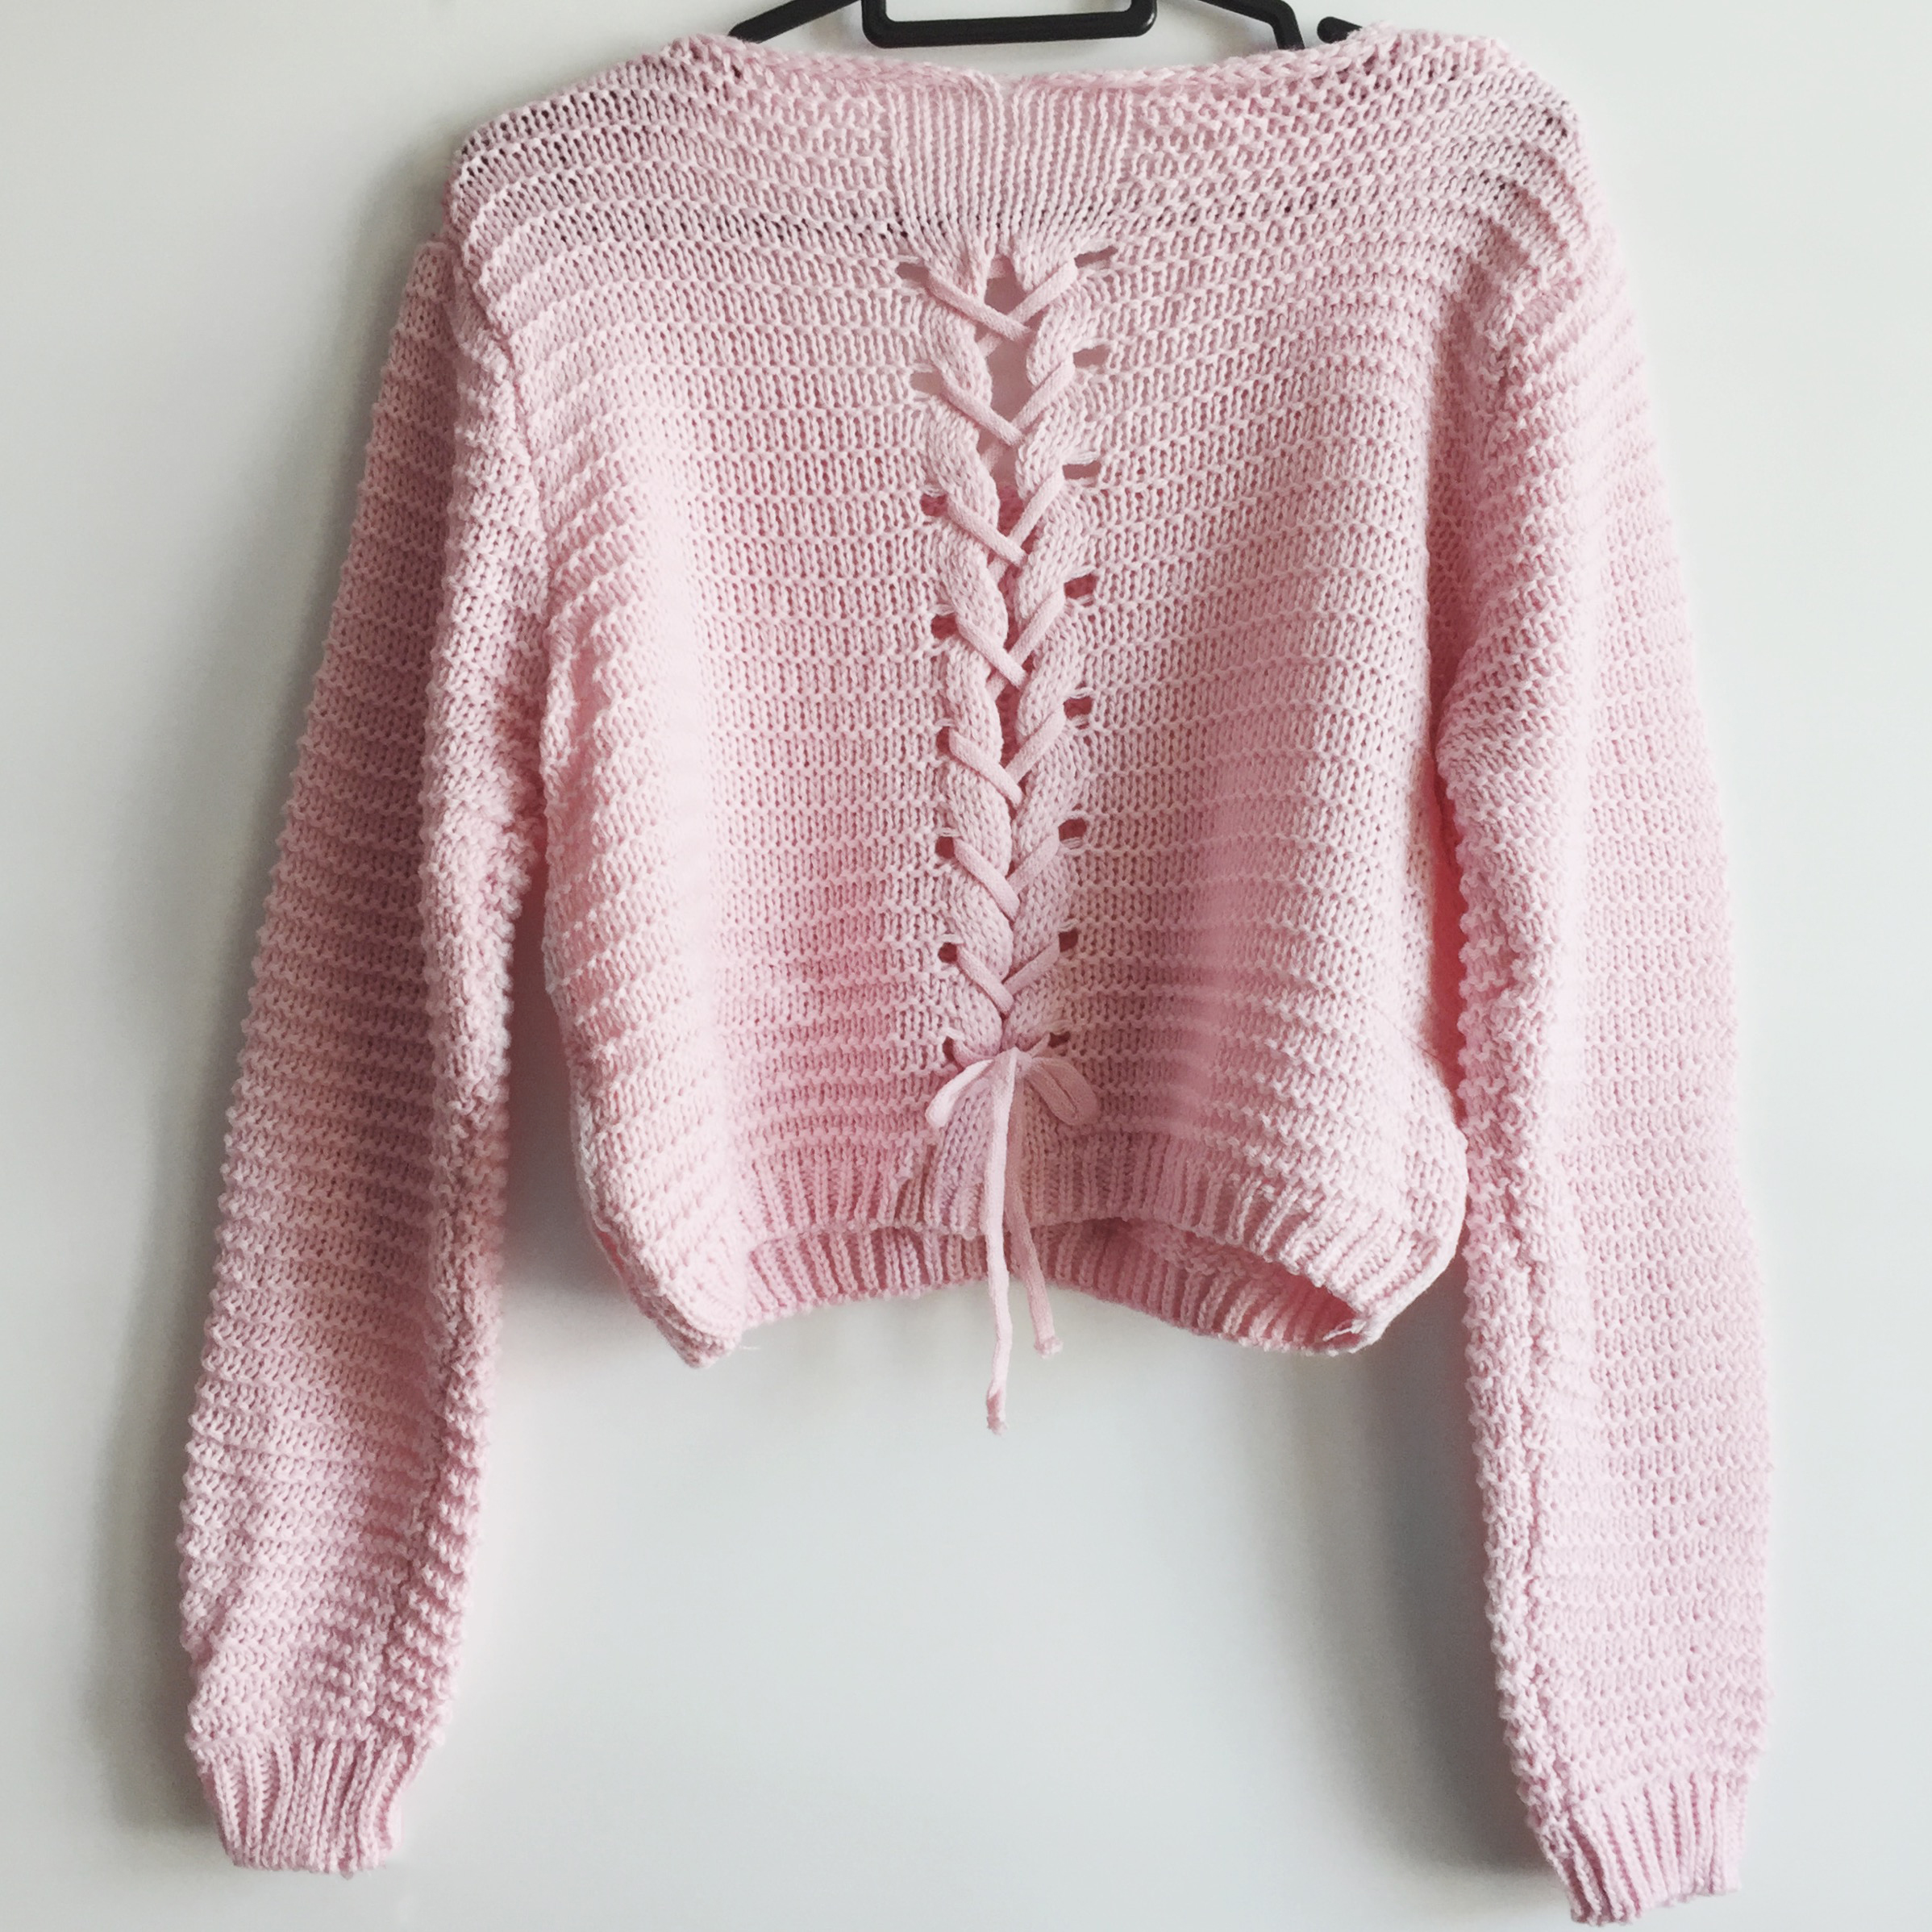 eab402dd3d5d01 Lace Up Back Cropped Knit Sweater (Pink) · Megoosta Fashion · Free ...